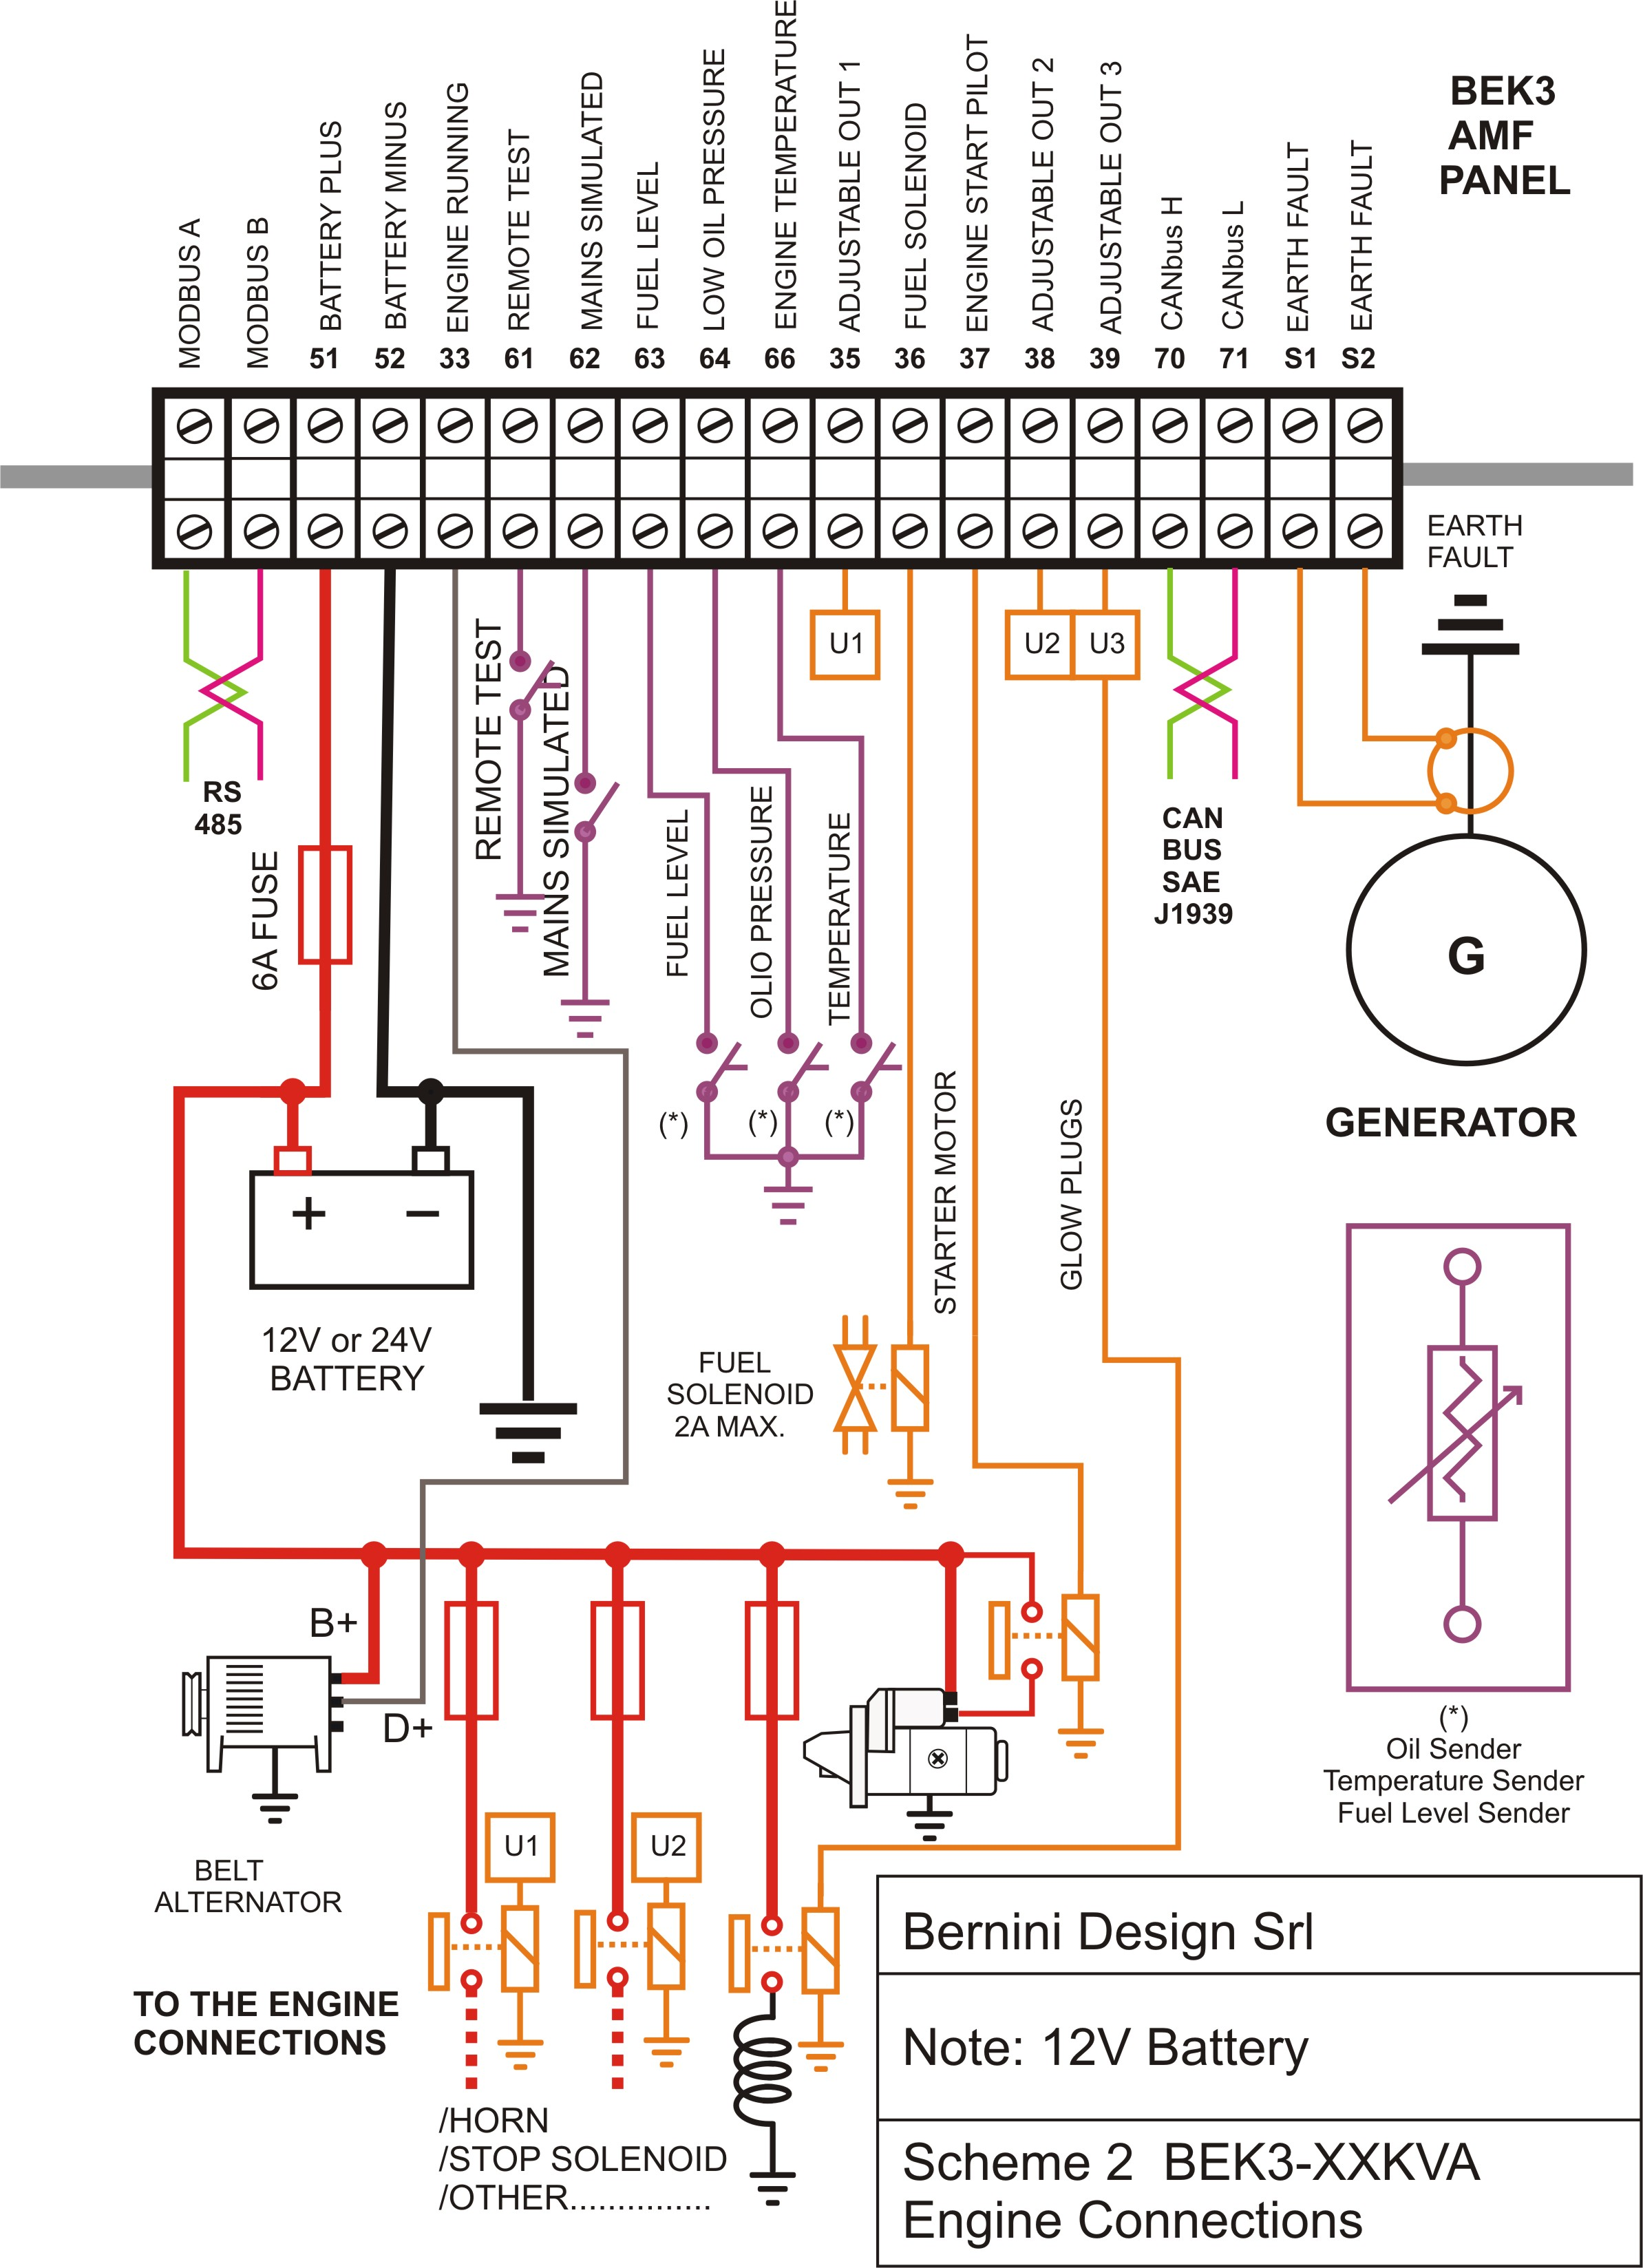 Diesel Generator Control Panel Wiring Diagram Engine Connections wiring diagram tool wiring color coding \u2022 free wiring diagrams 30 Amp Relay Wiring Diagram at readyjetset.co